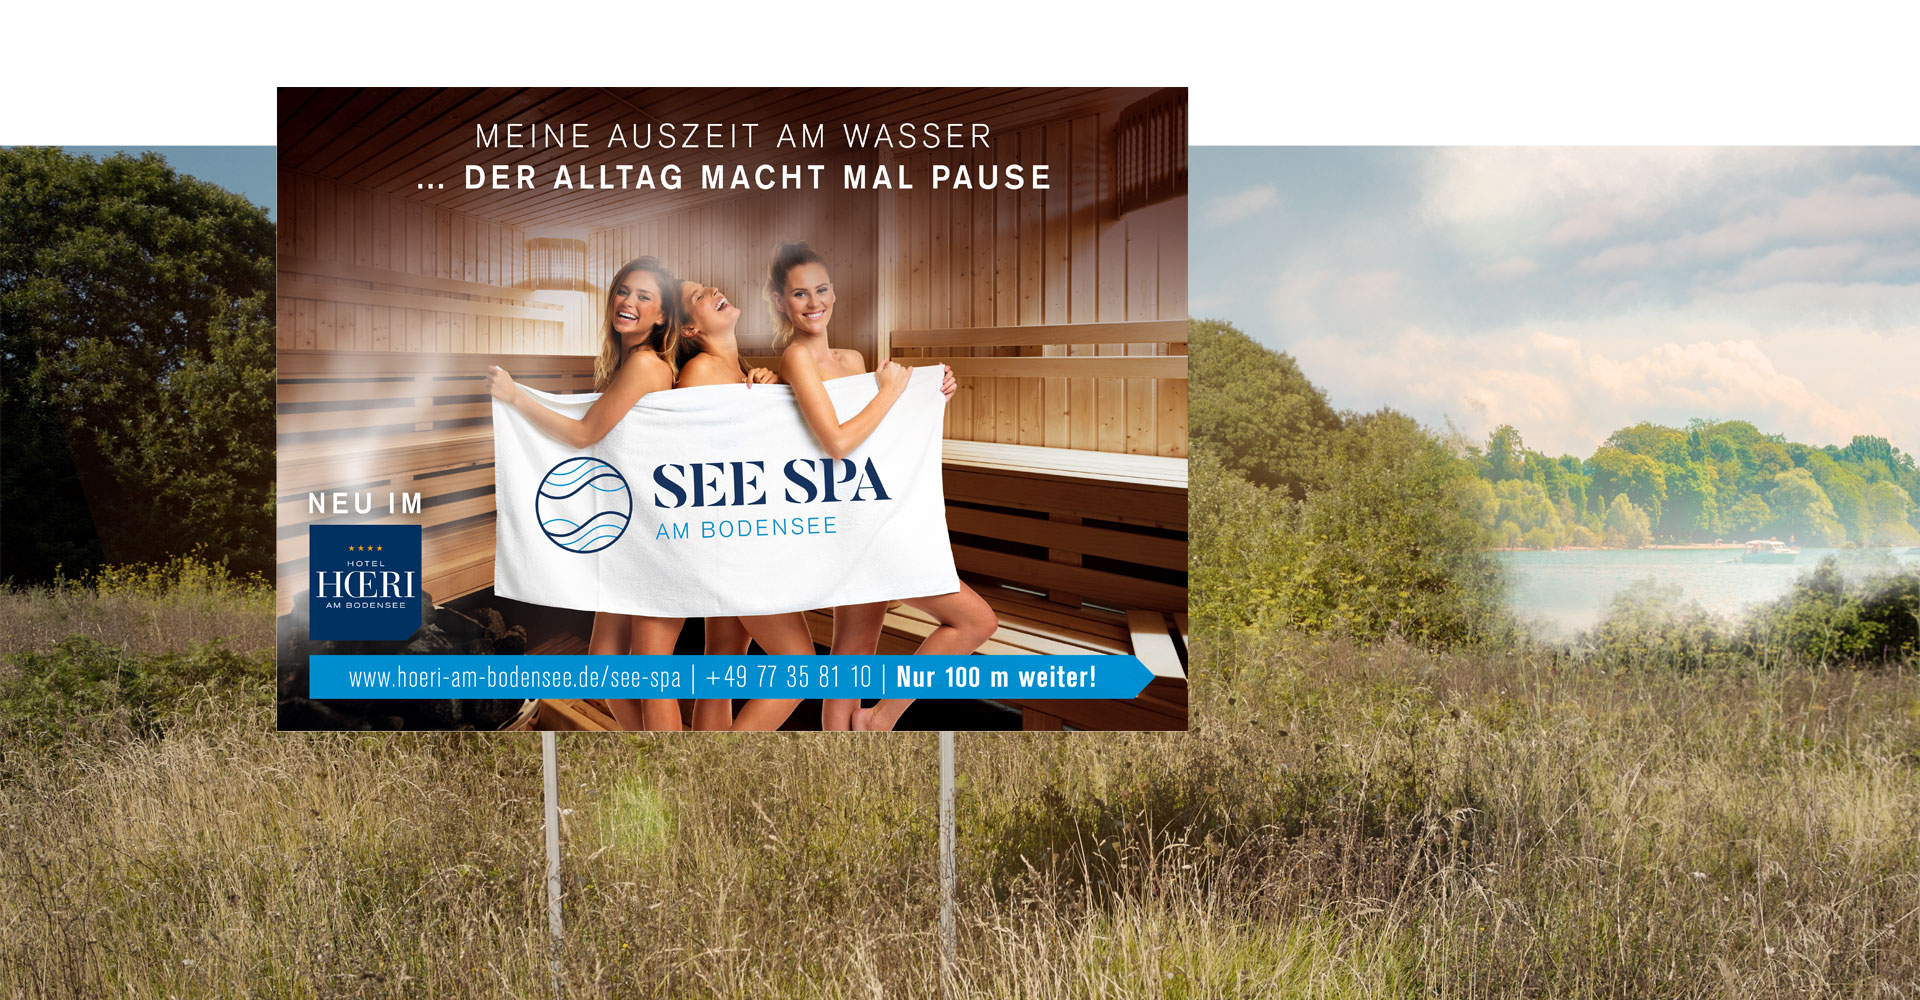 OPUS Marketing / Projekte / See Spa / Großflächenwerbung / Plakat